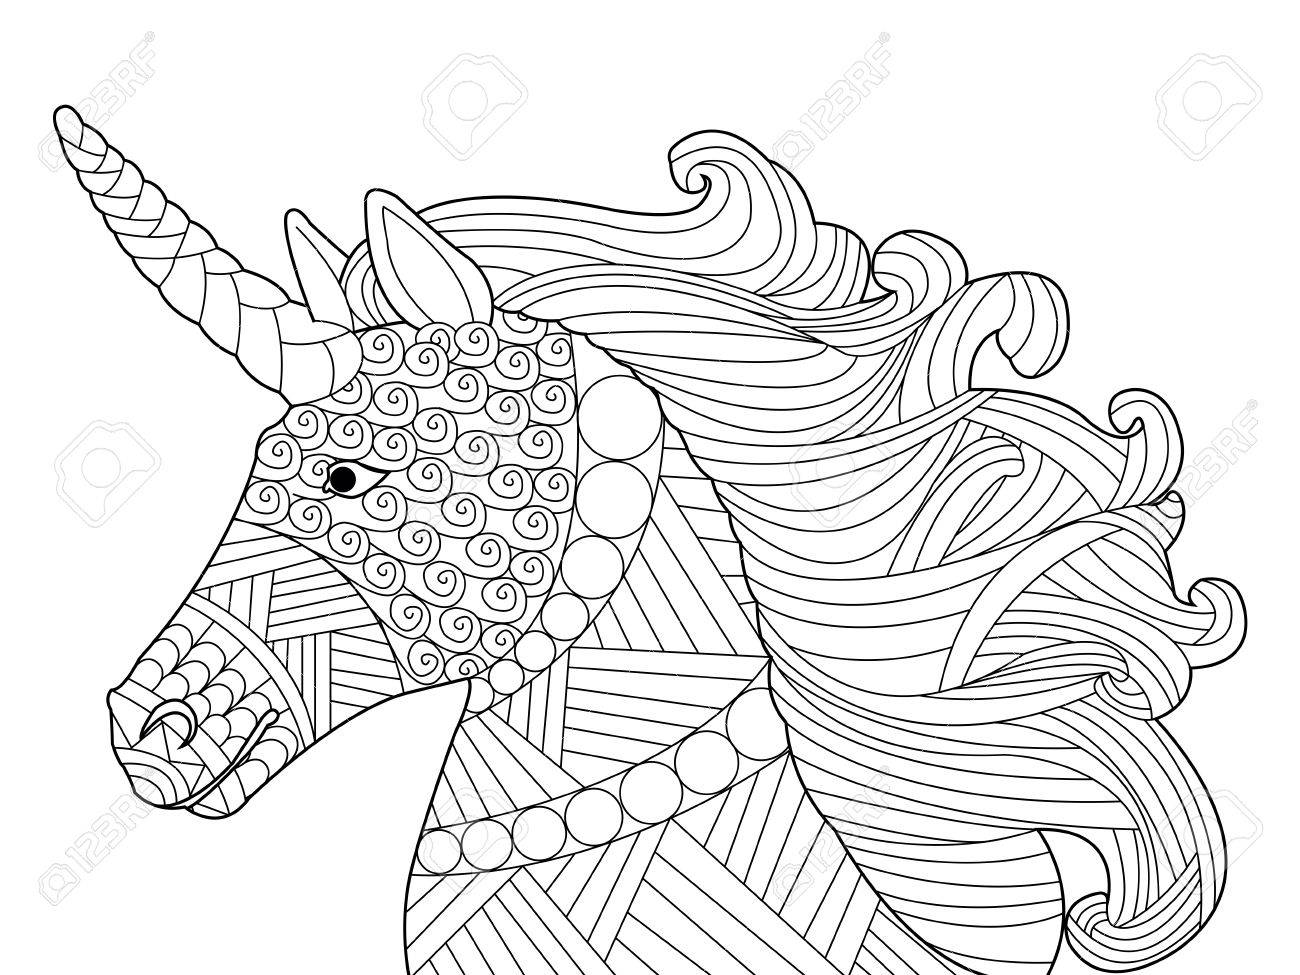 Head unicorn coloring book for adults vector Black and white lines Lace pattern Banque d